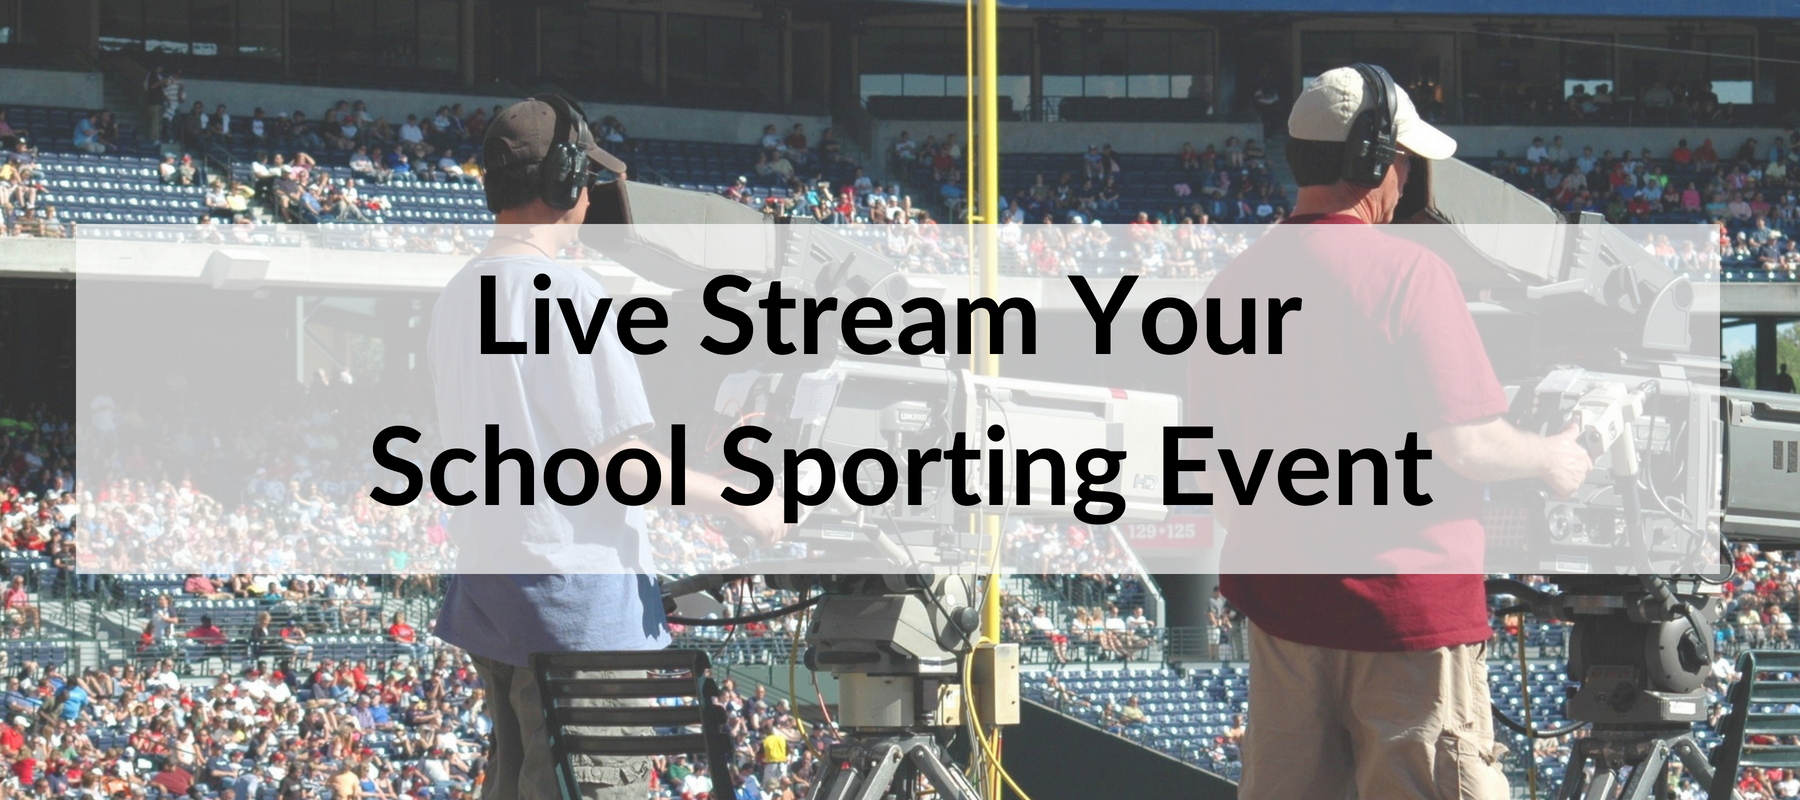 Live Stream Your School Sporting Event